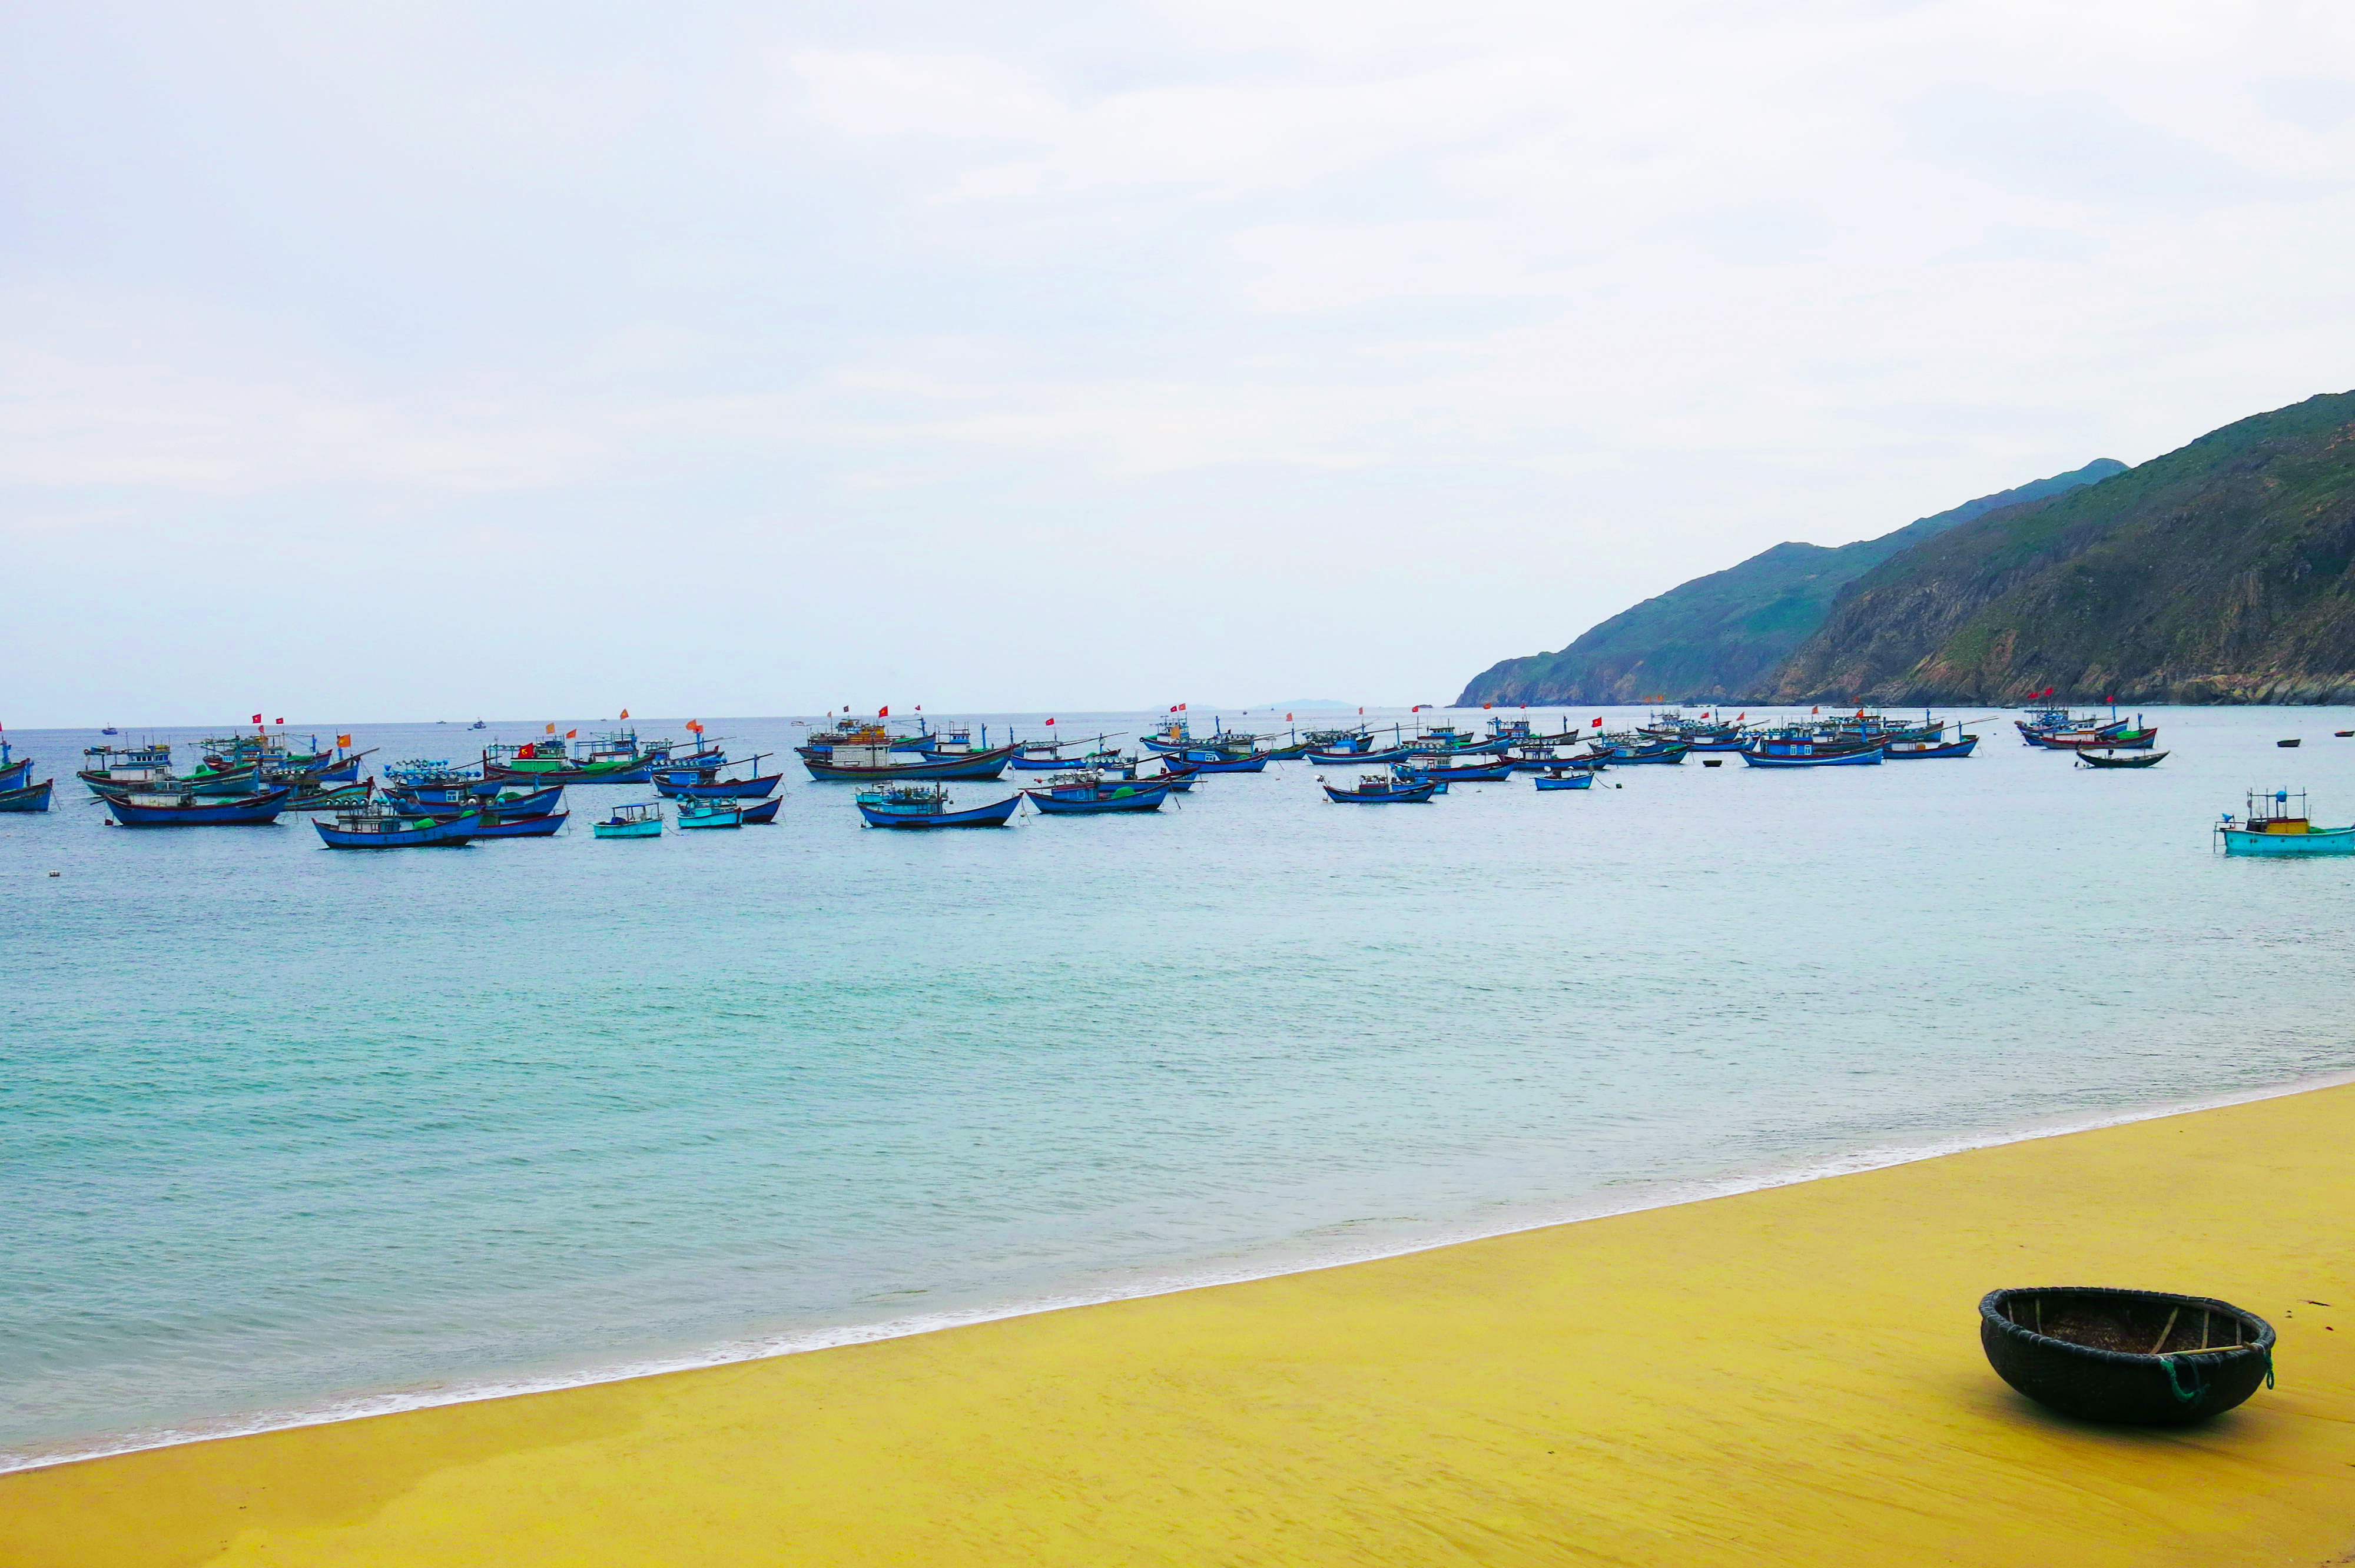 Holidays on the unexplored beaches of Vietnam and Myanmar